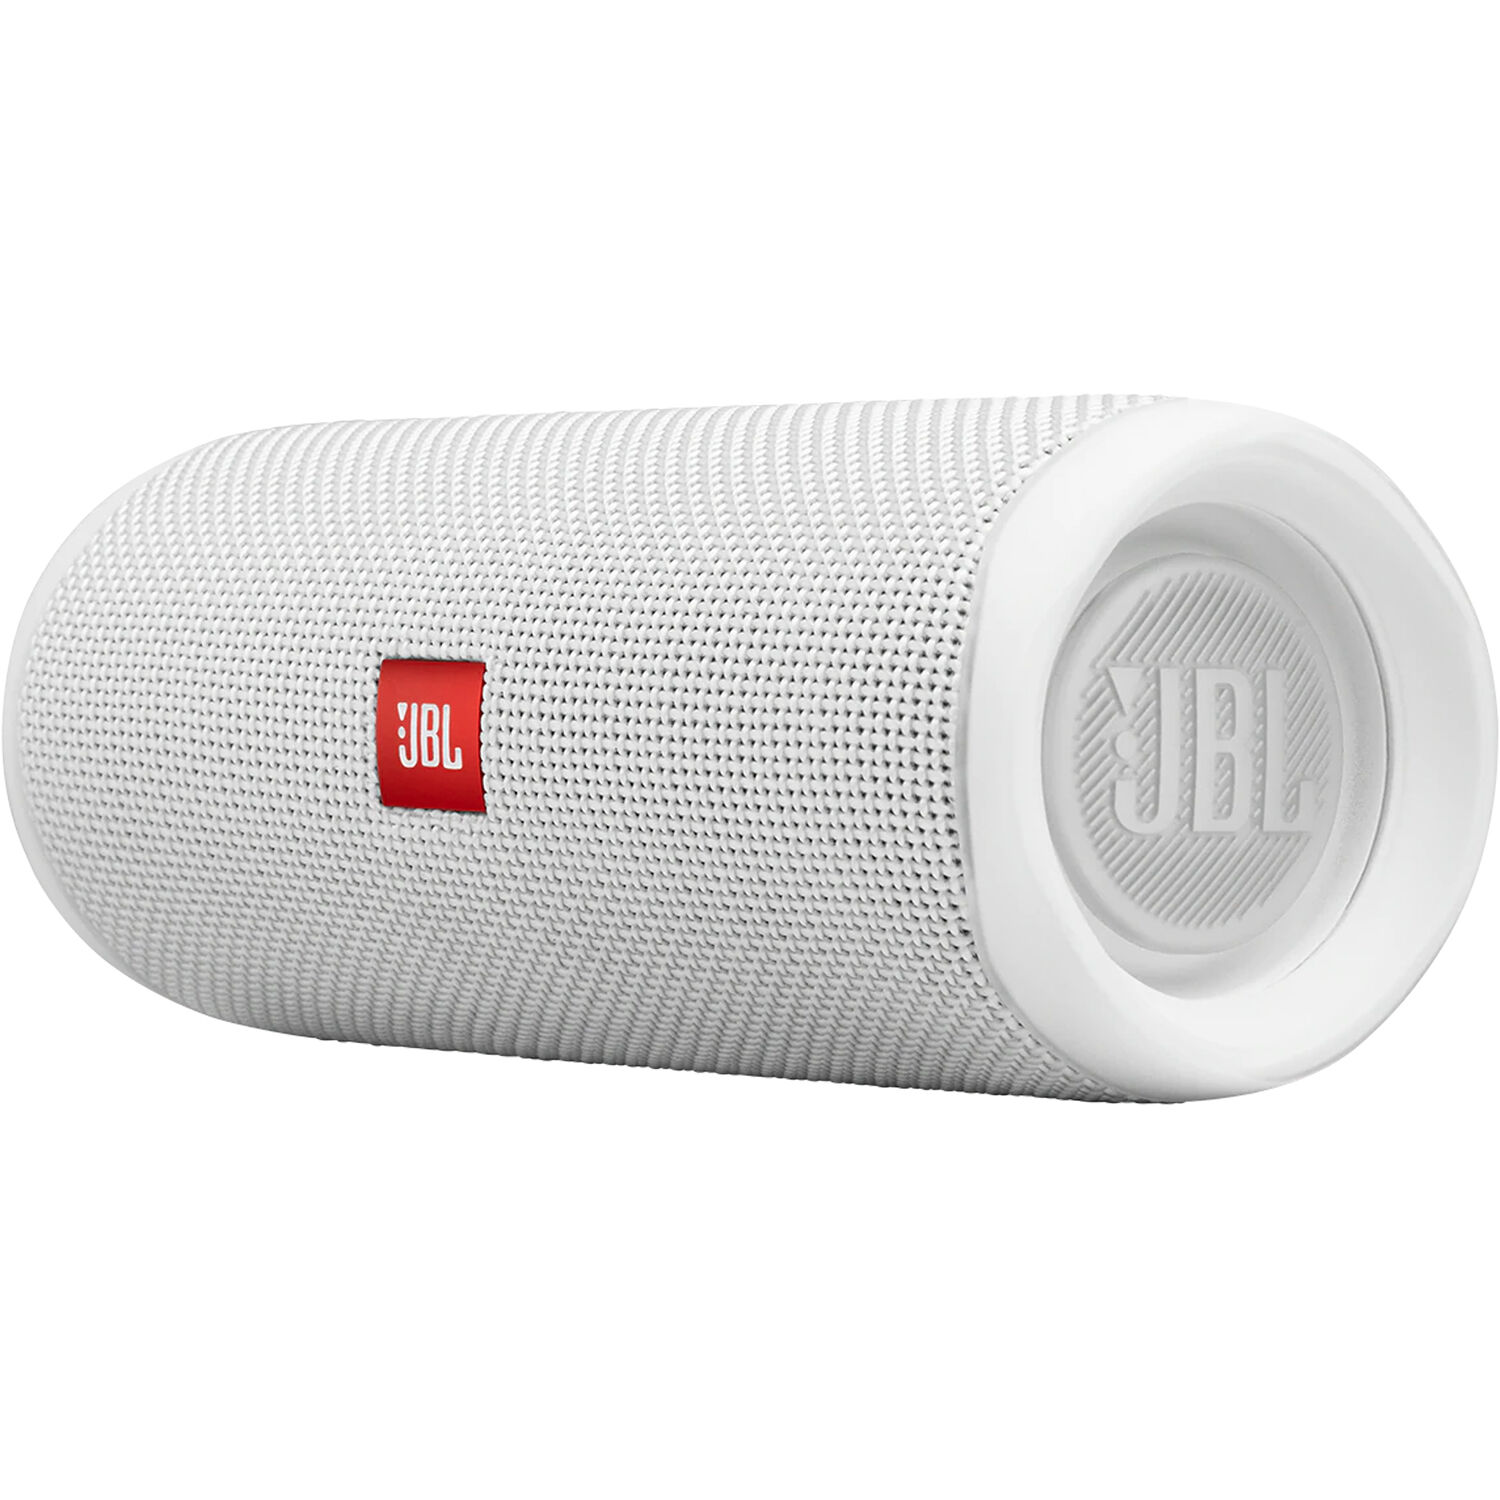 jbl flip 5 waterproof bluetooth speaker jblflip5whtam b h photo